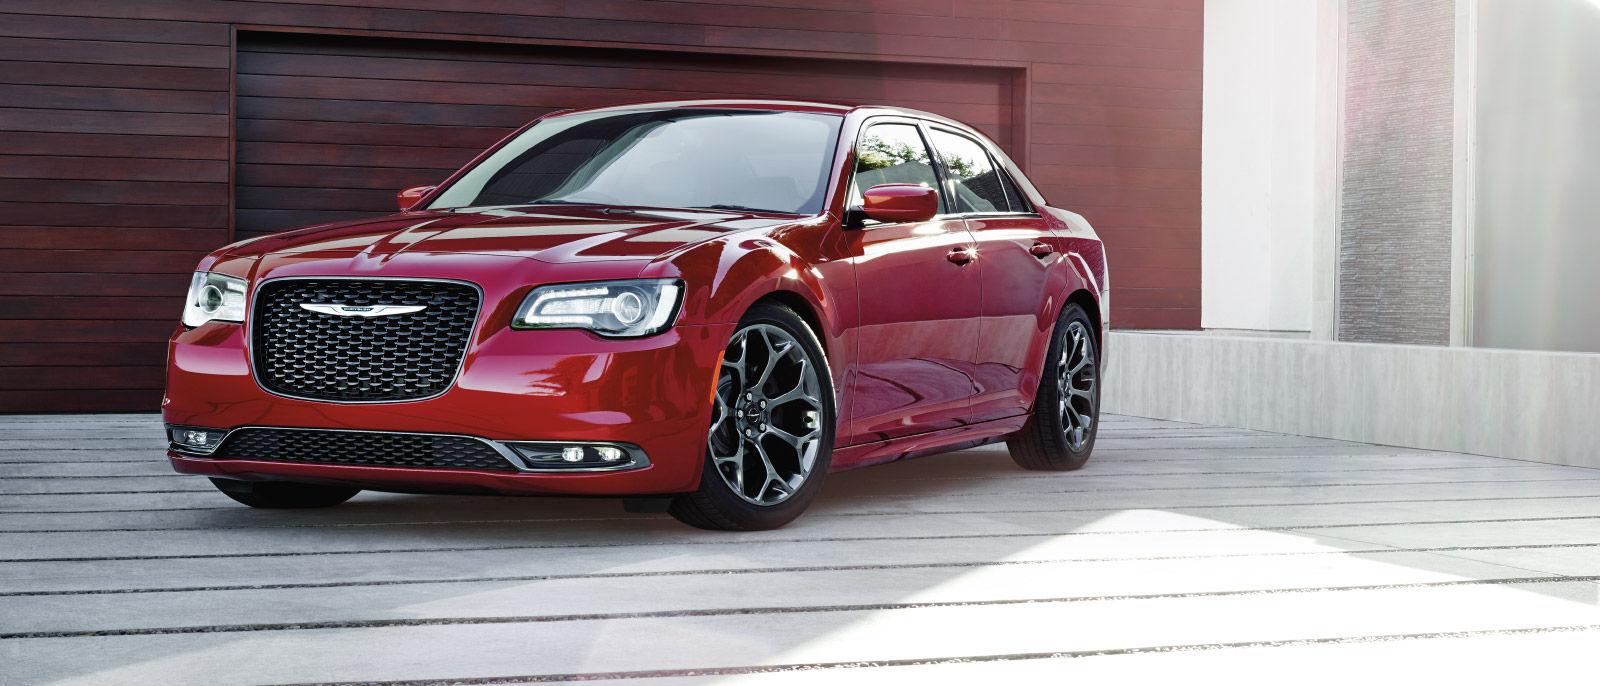 2016 Chrysler 300 Exterior